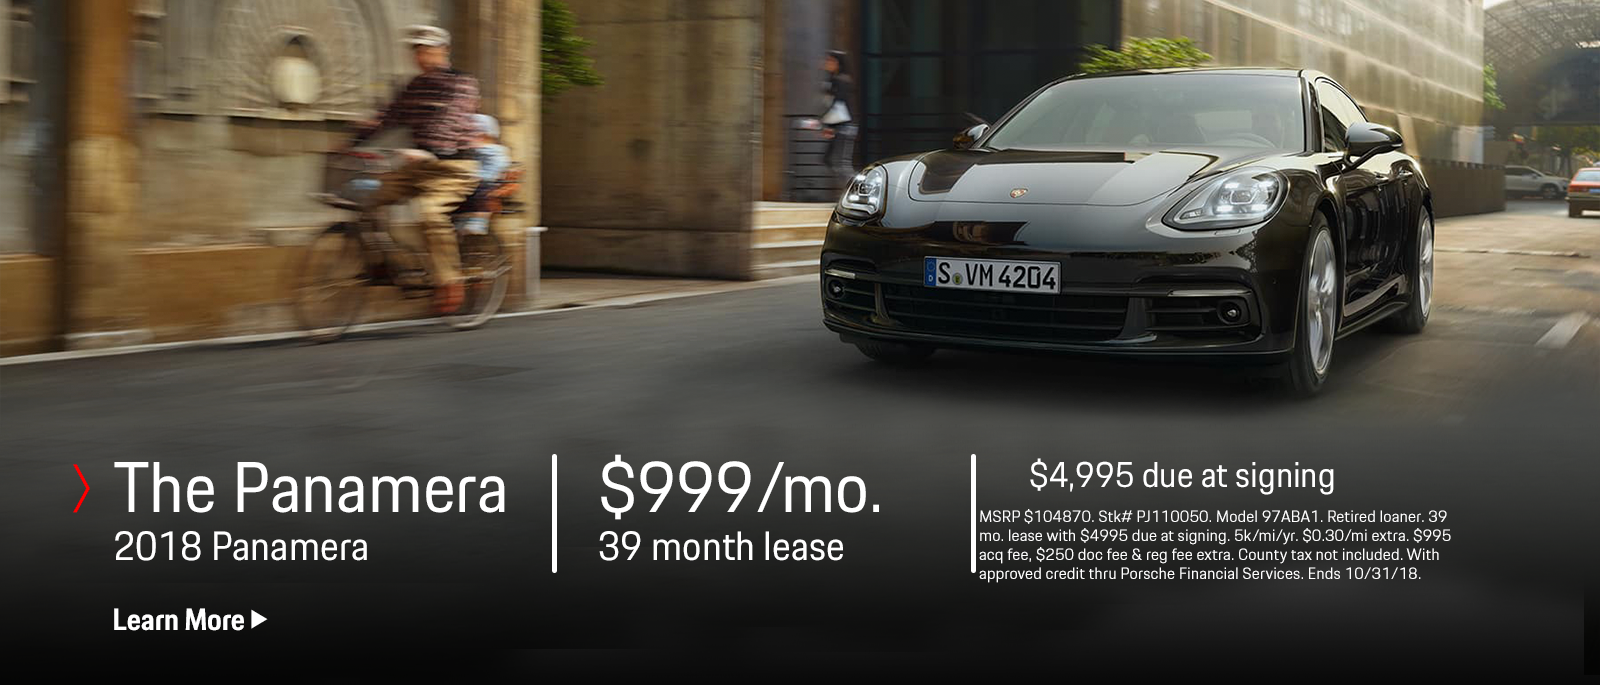 PNOOH-18398-webslider-1600x685-OCT-panamera